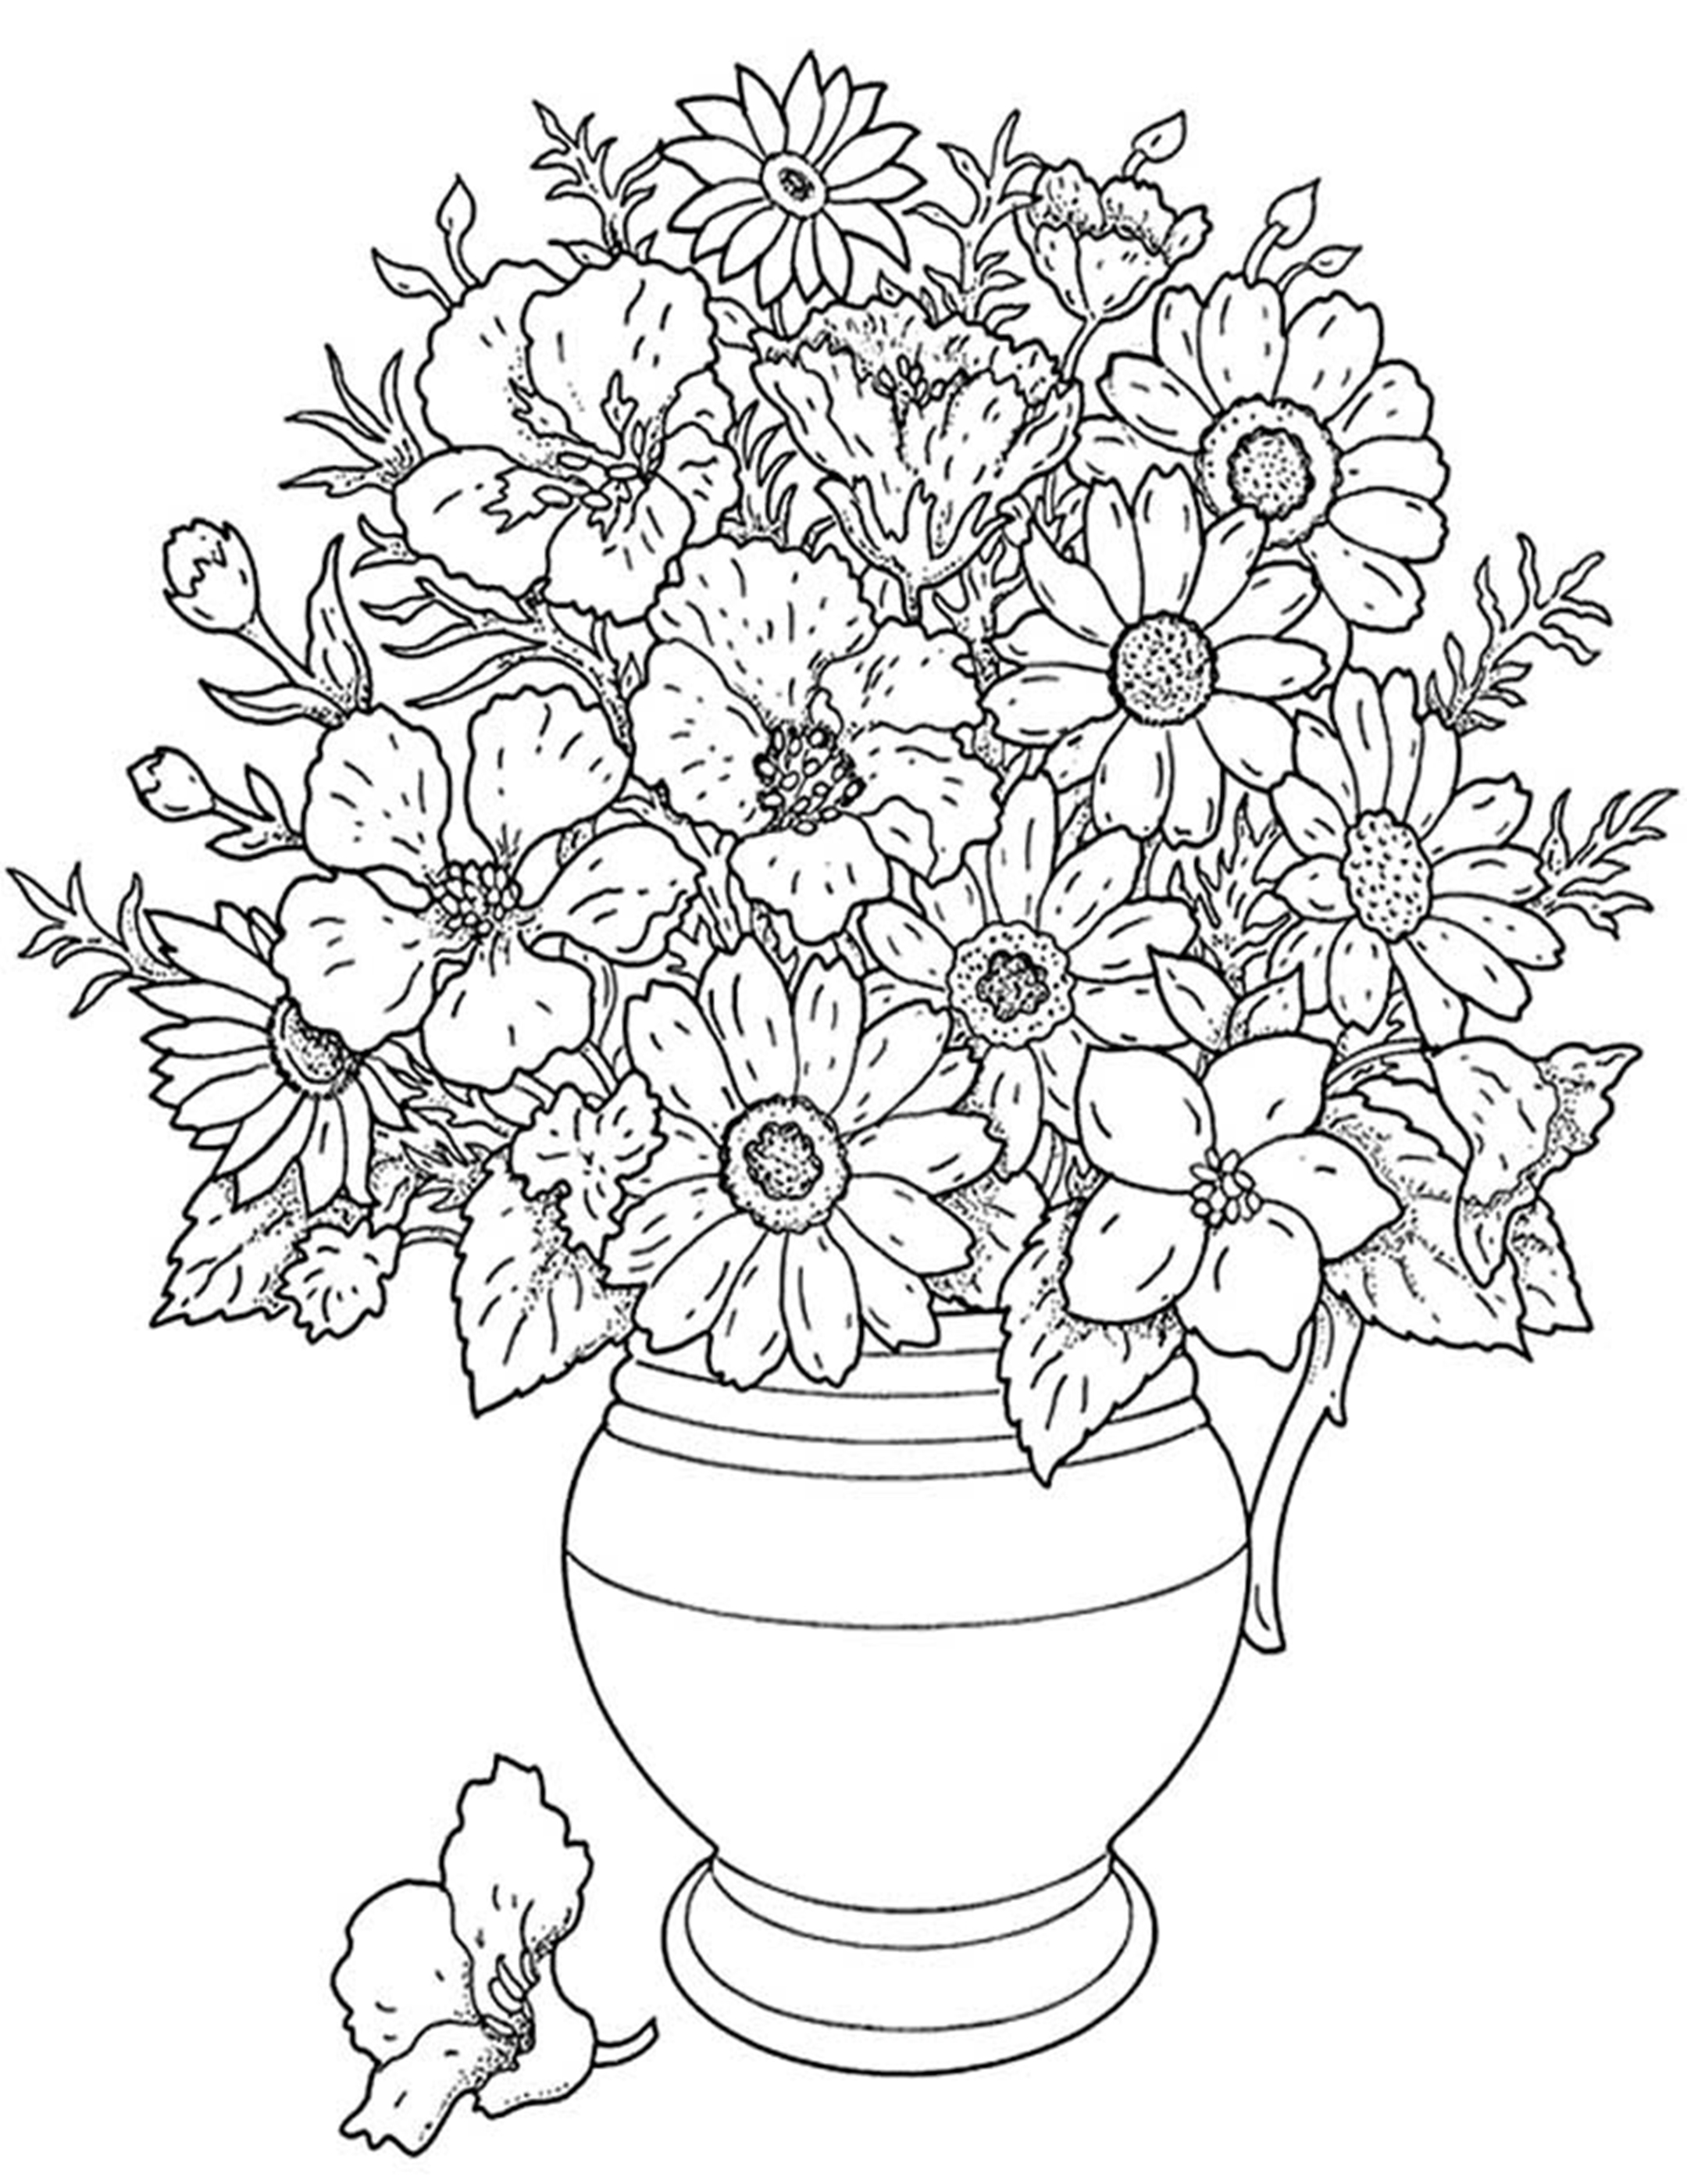 pictures of flowers to color 10 flower coloring sheets for girls and boys all esl color to pictures of flowers